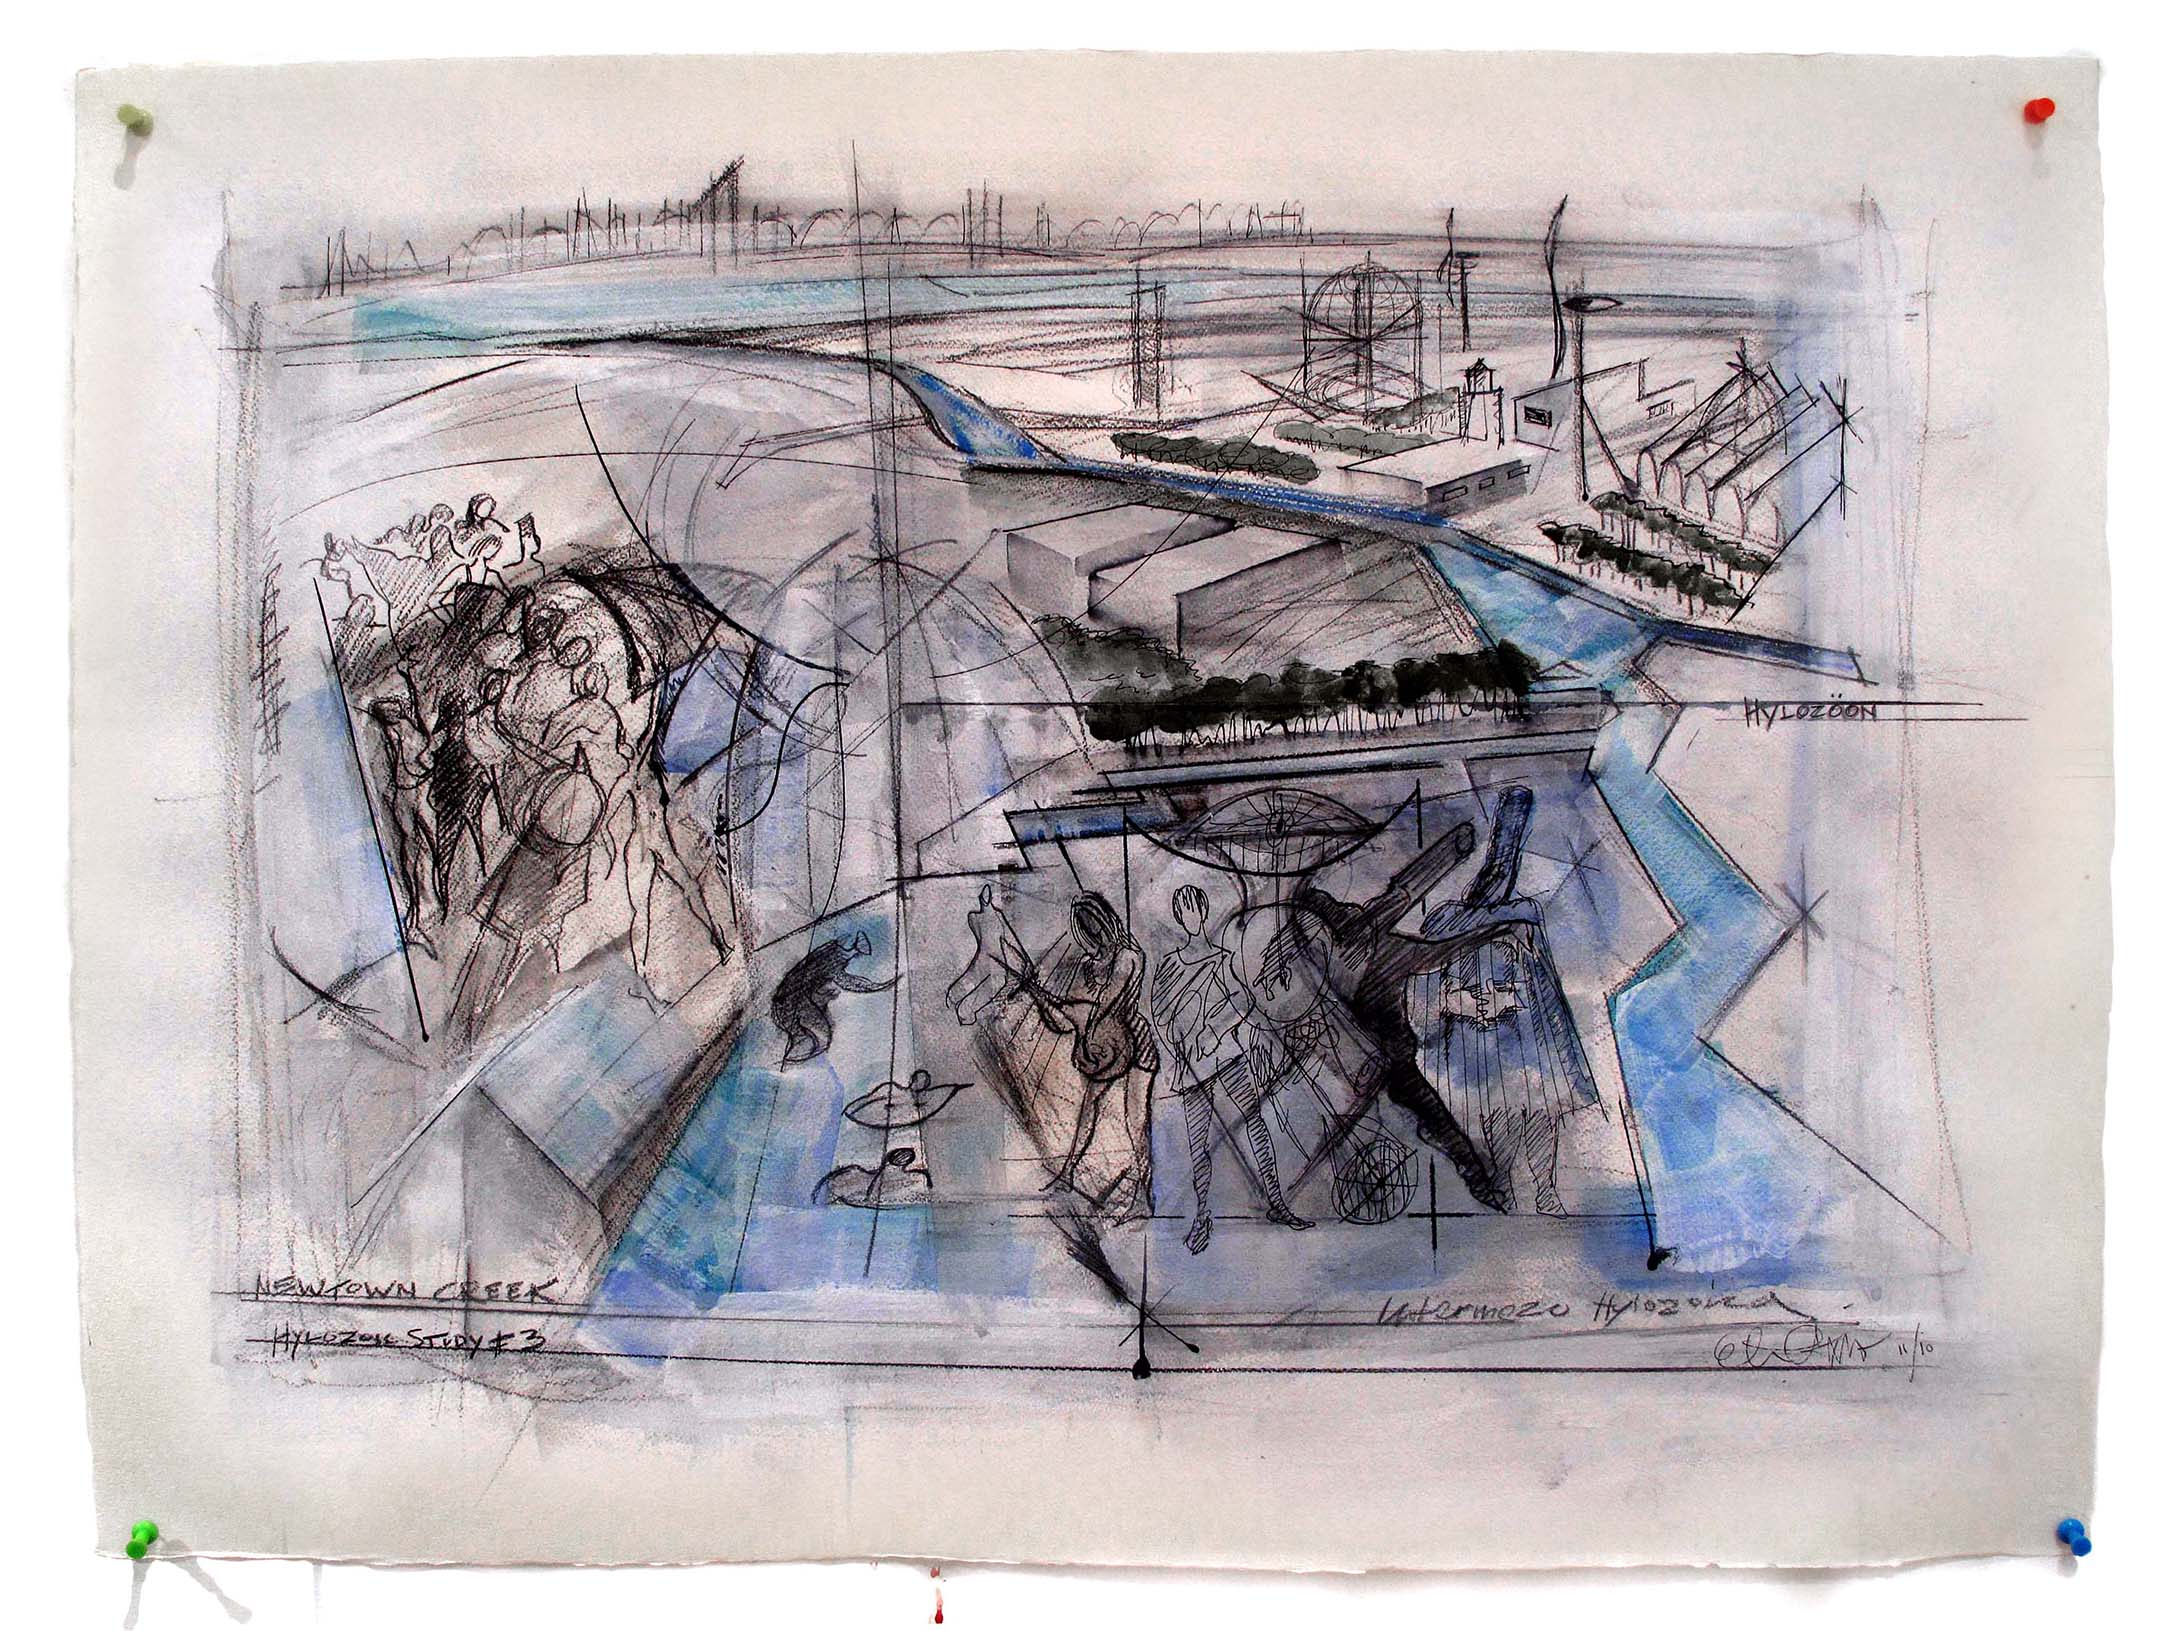 Newtown Creek, The Hylozoica Series